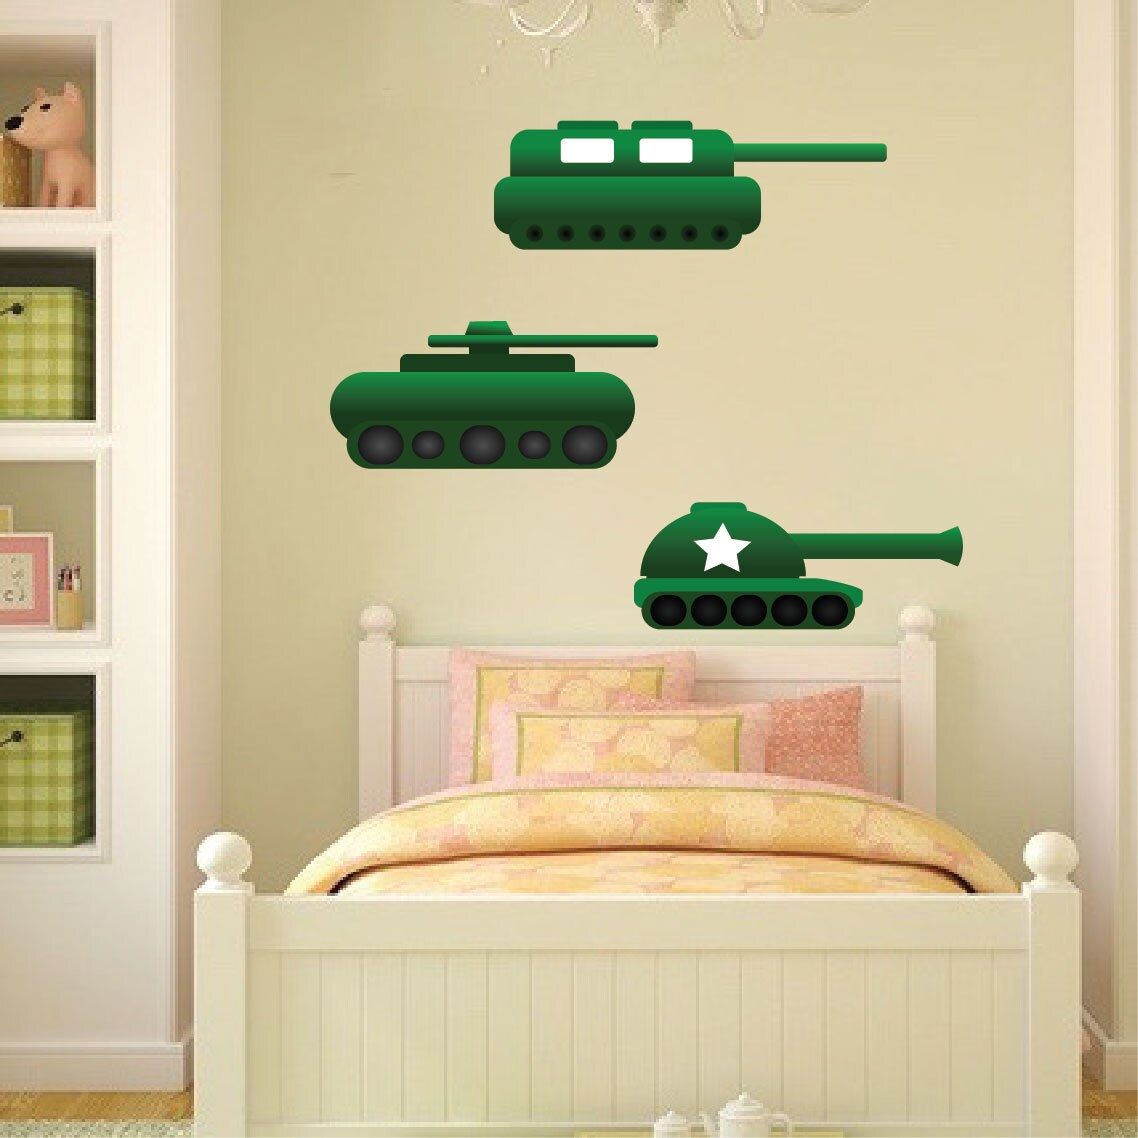 Tank Wall Decals Kid\'s Room Battle Decals Army Wall | Etsy